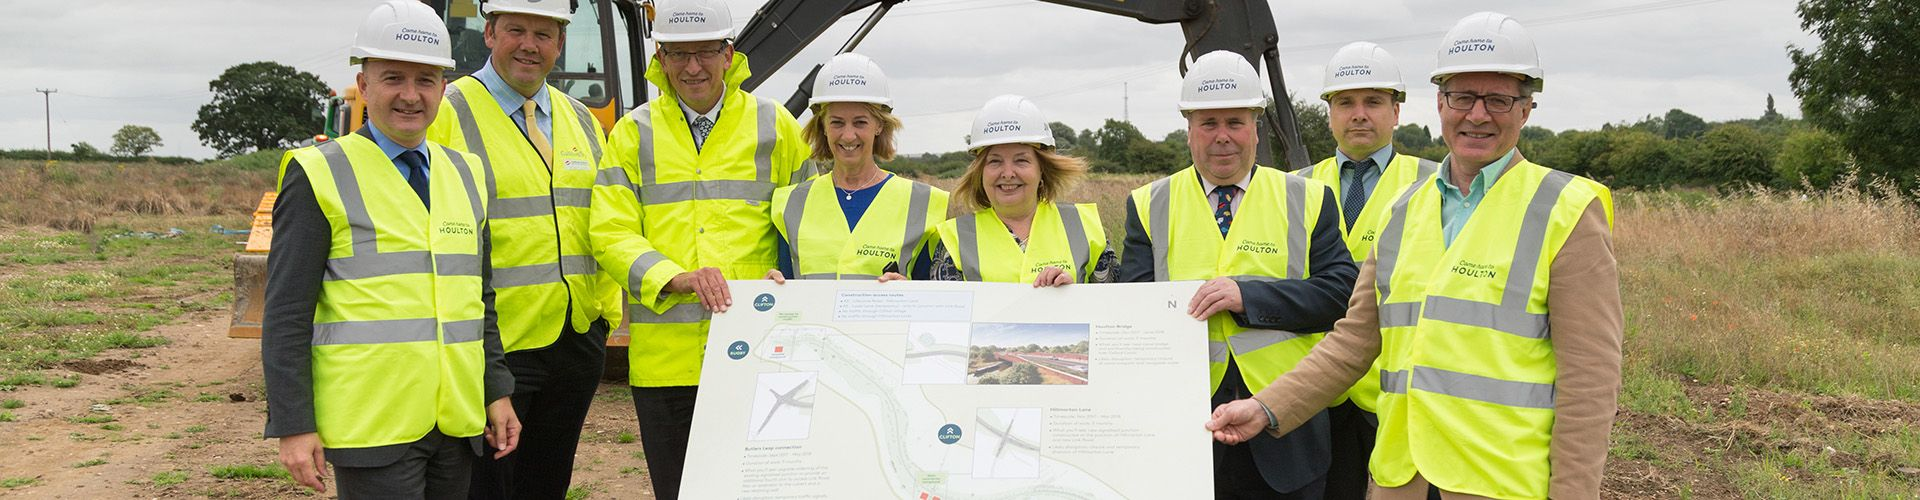 31.07.17_Ground breaks on Rugby 6,200 home urban extension link road.jpg